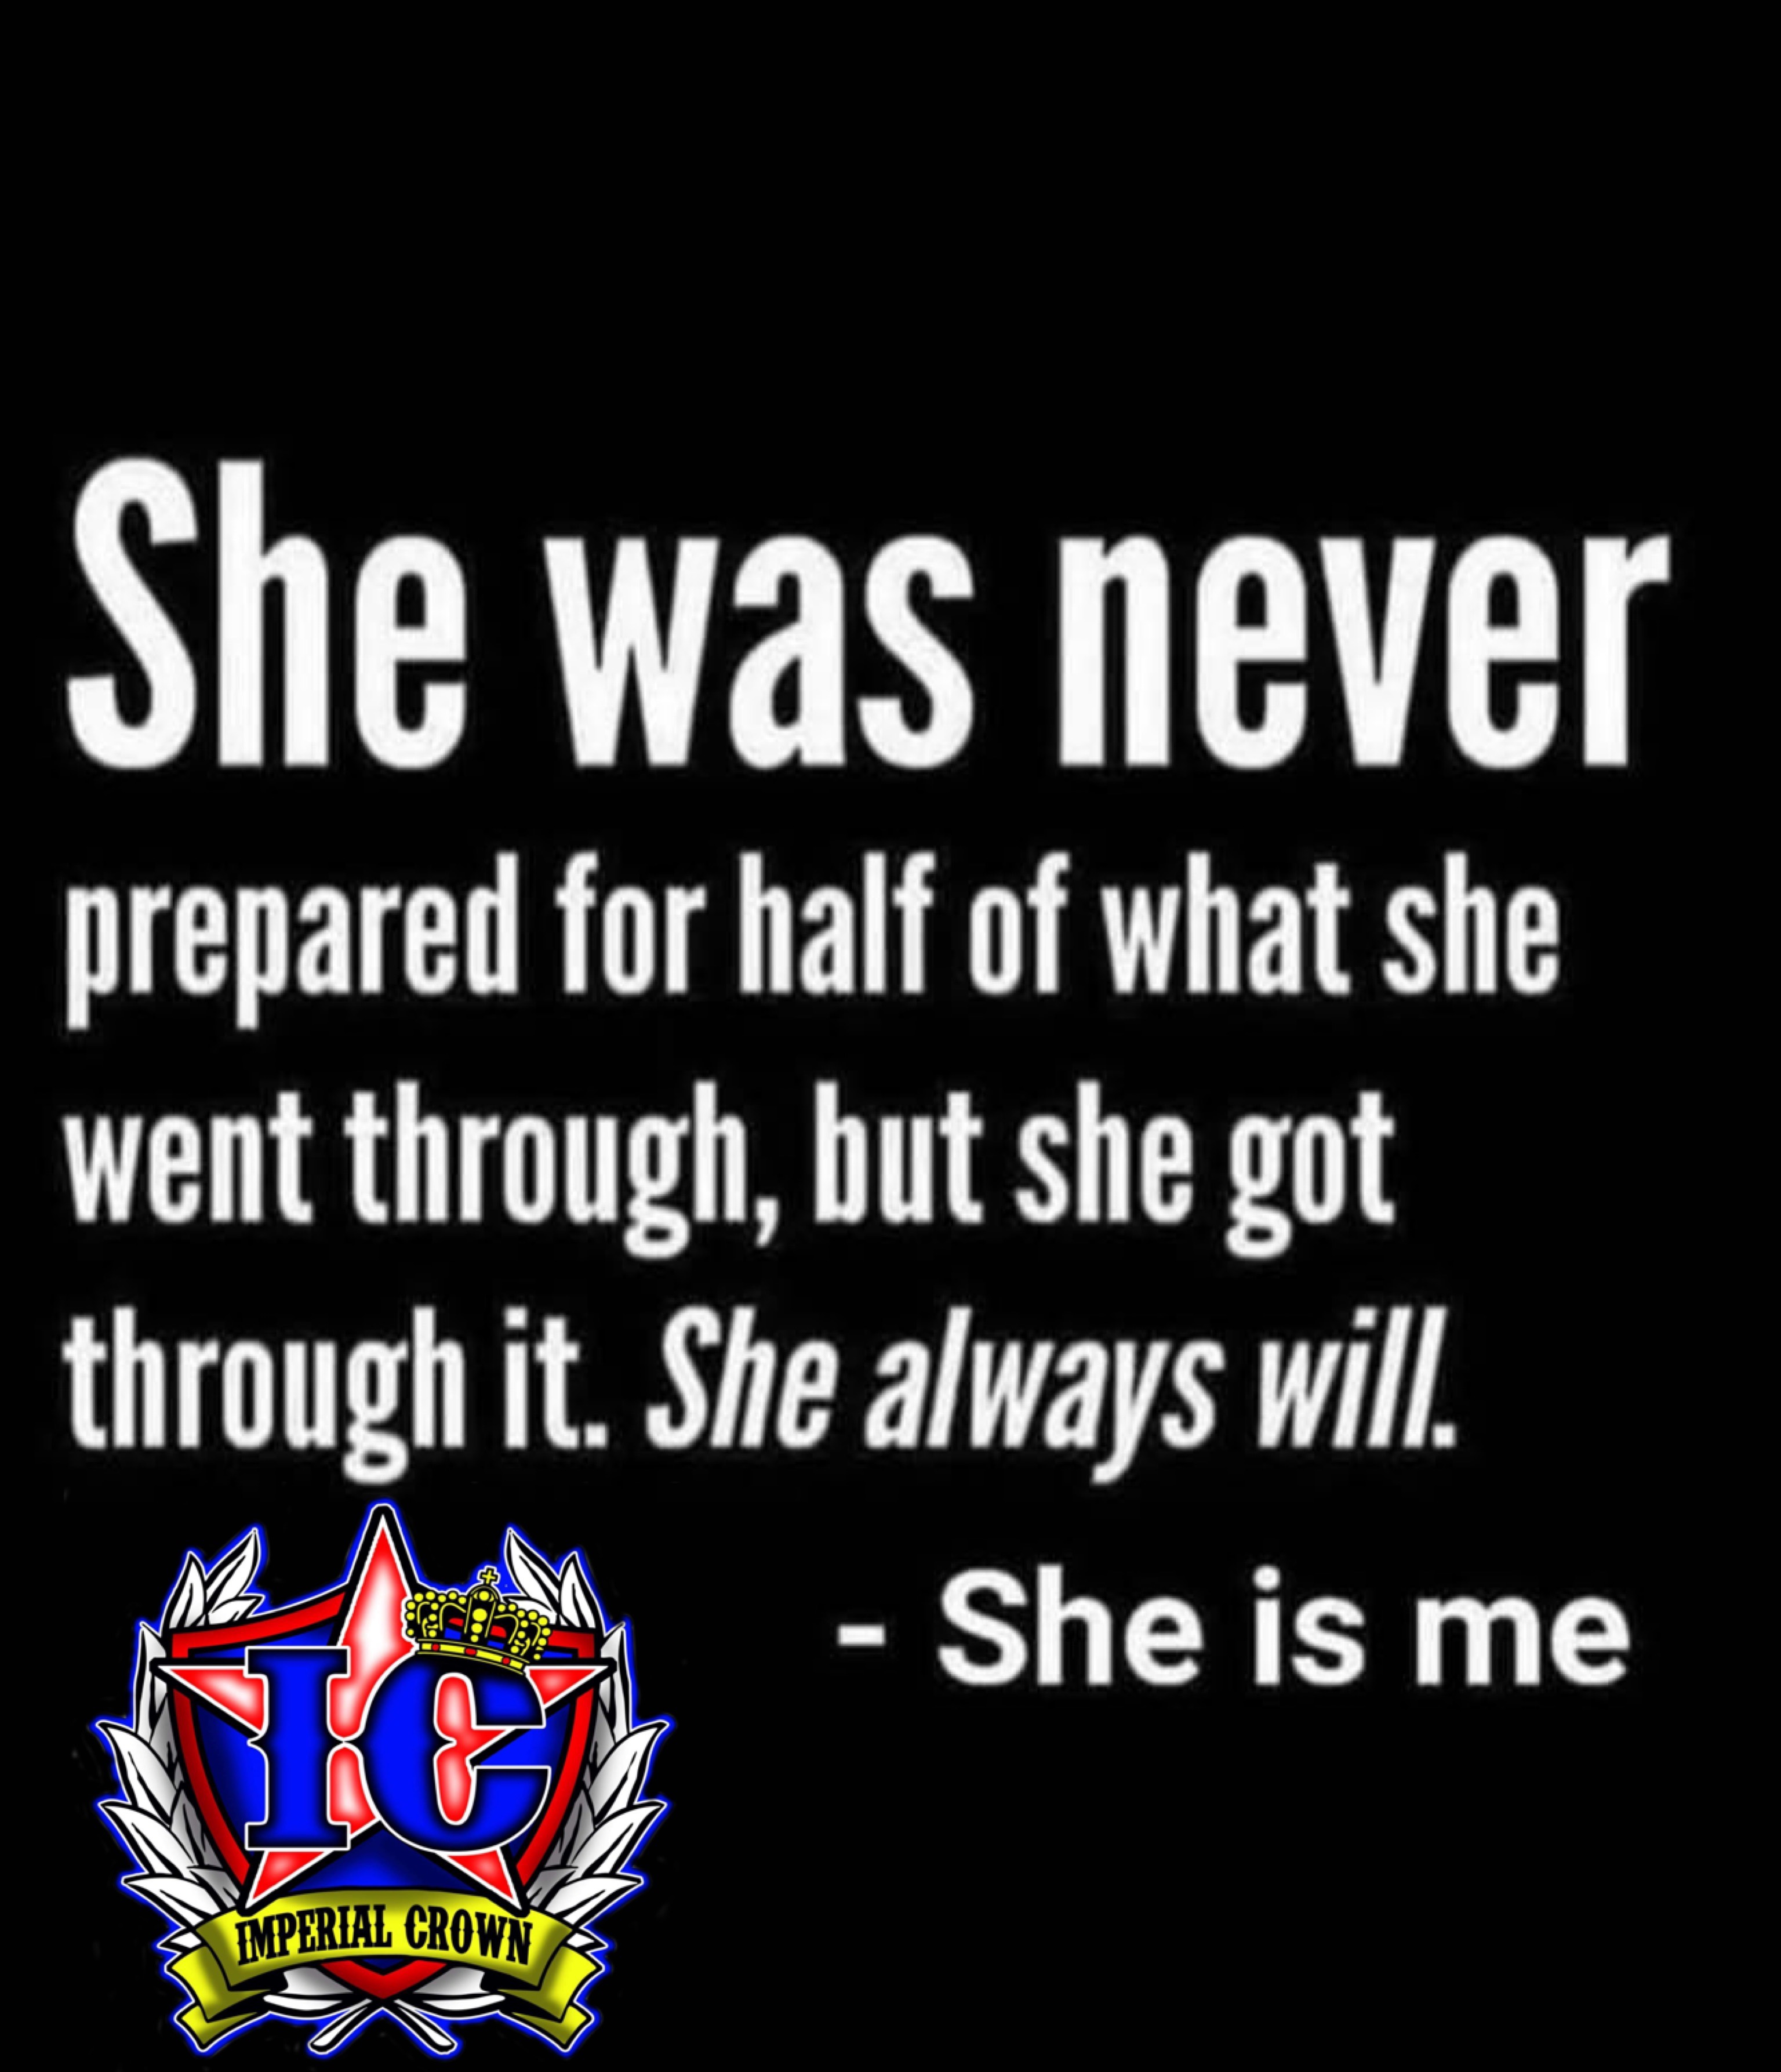 She was never prepared for half of what she went through but she got through it